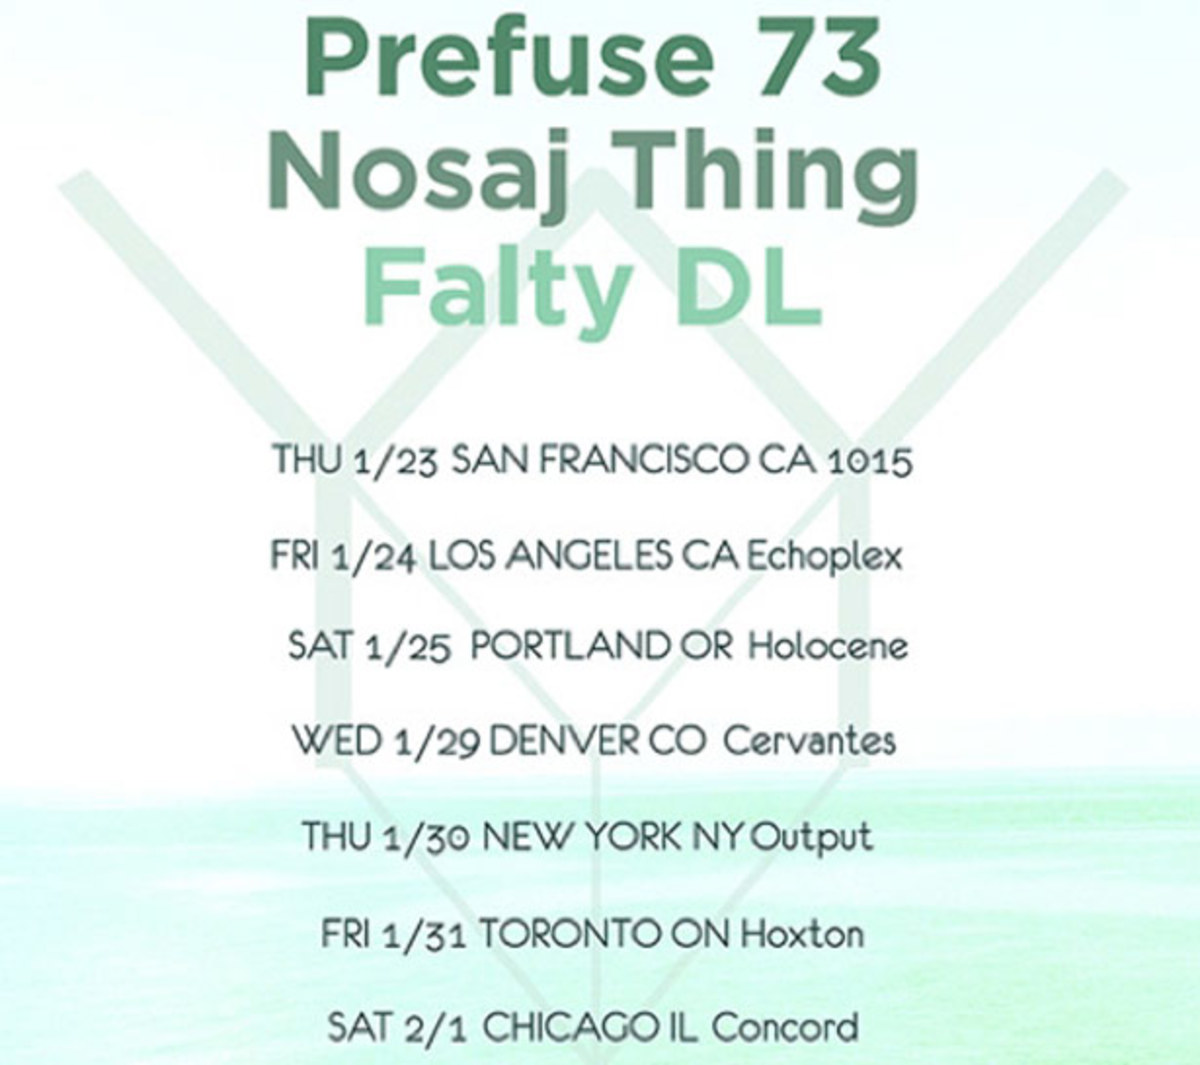 Prefuse 73, Nosaj Thing, & Falty DL Join Up For Yellow Year Tour - EDM News